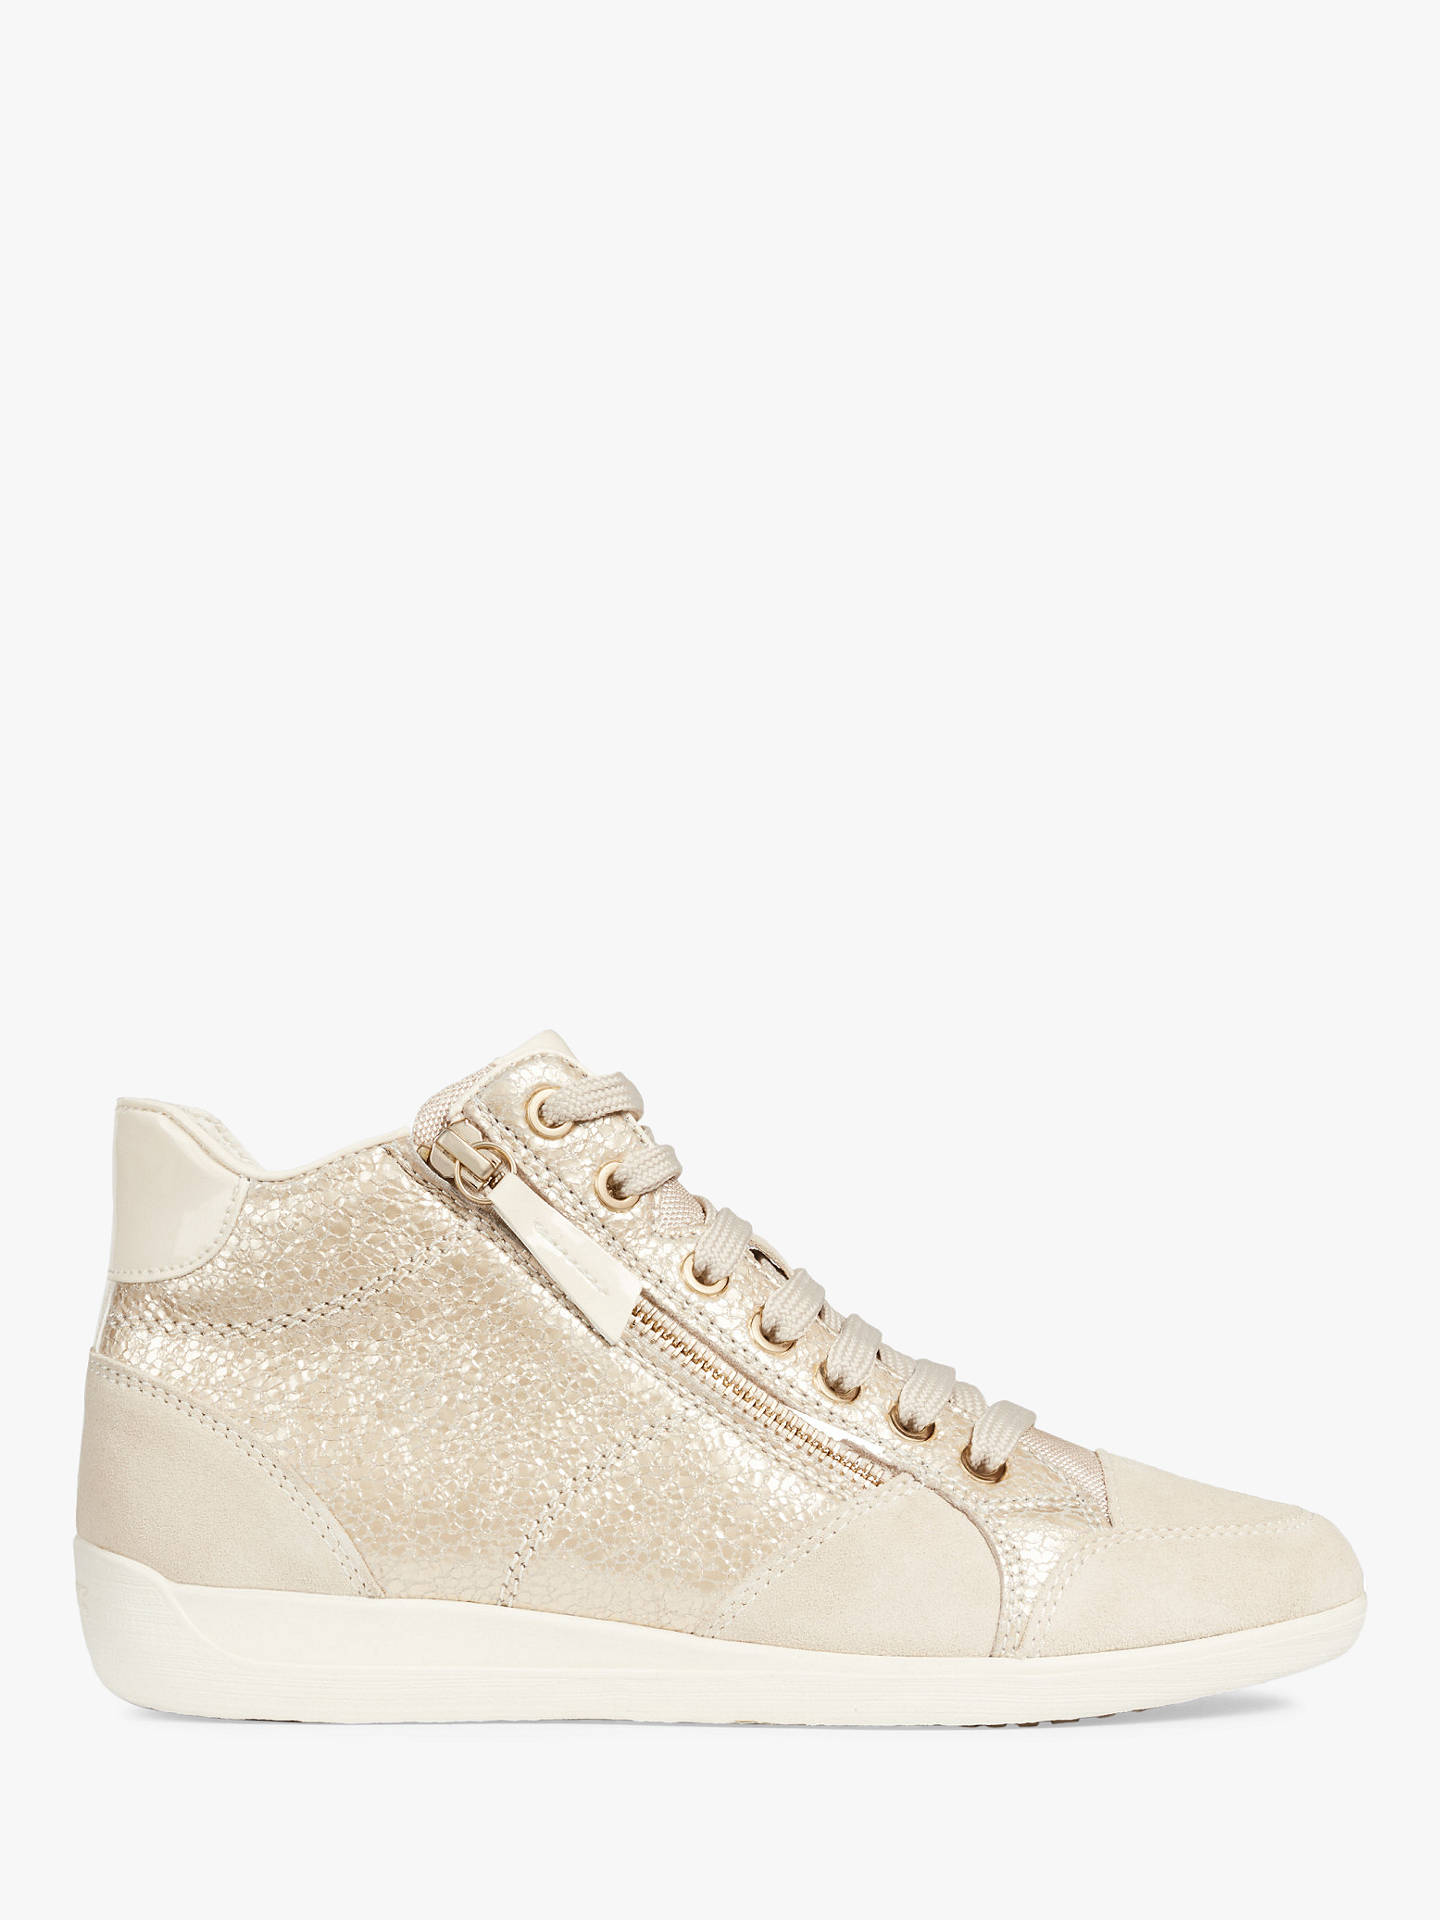 78454b55a04 Buy Geox Women's Myria High Top Lace Up Trainers, Gold/Cream Leather, 3 ...